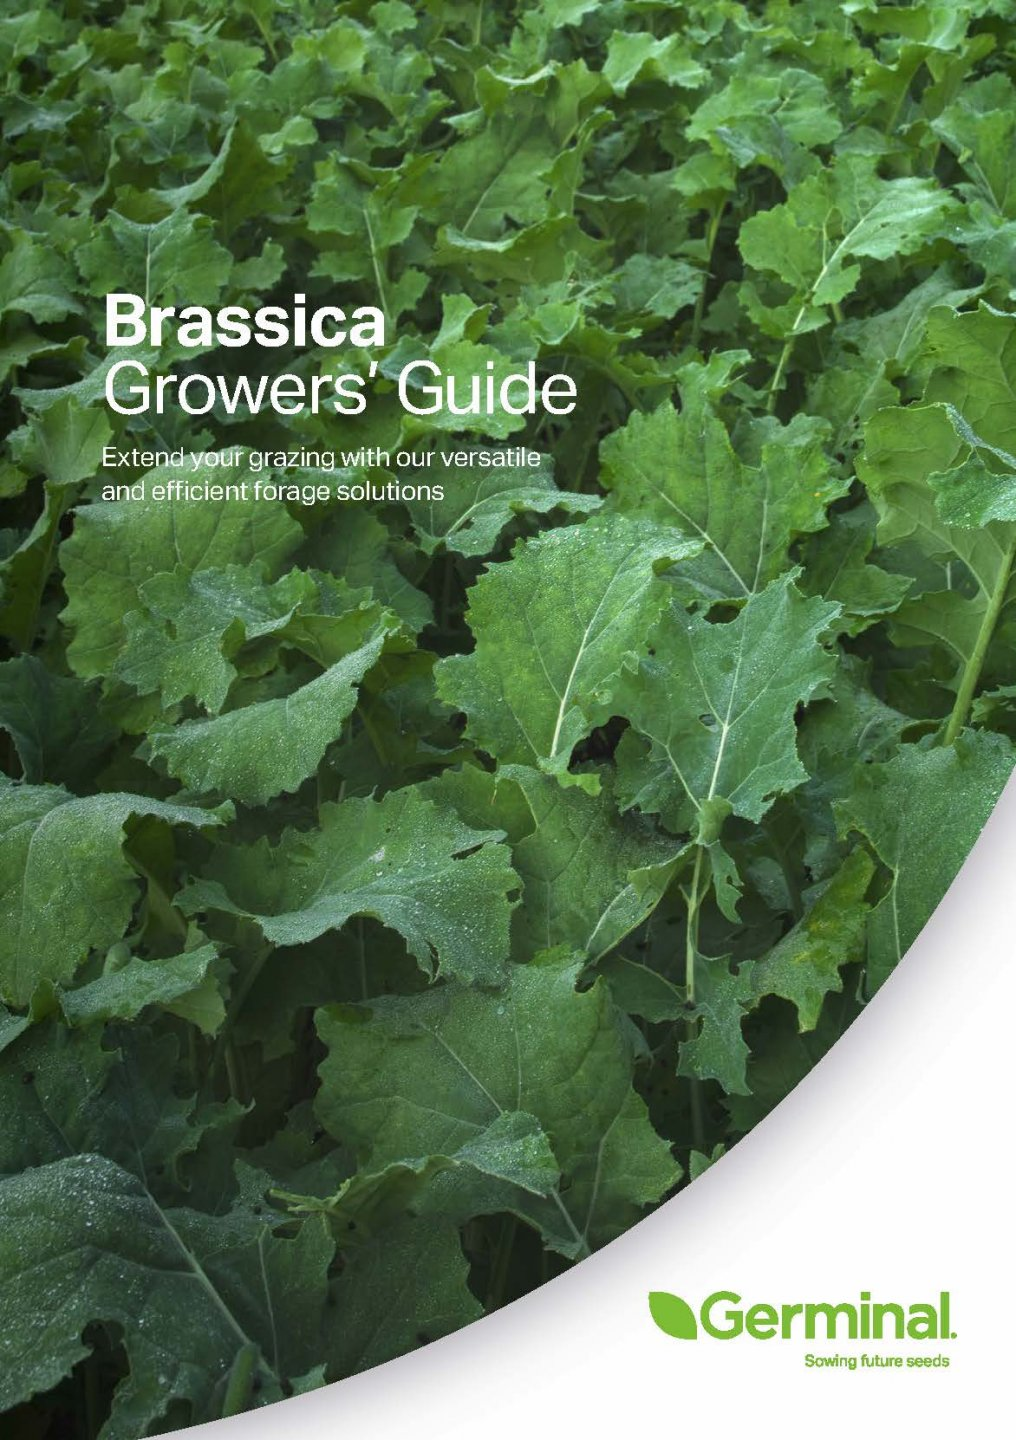 GGB_AGRI_107_Brassica_Growers_guide_2020_Page_01.jpg